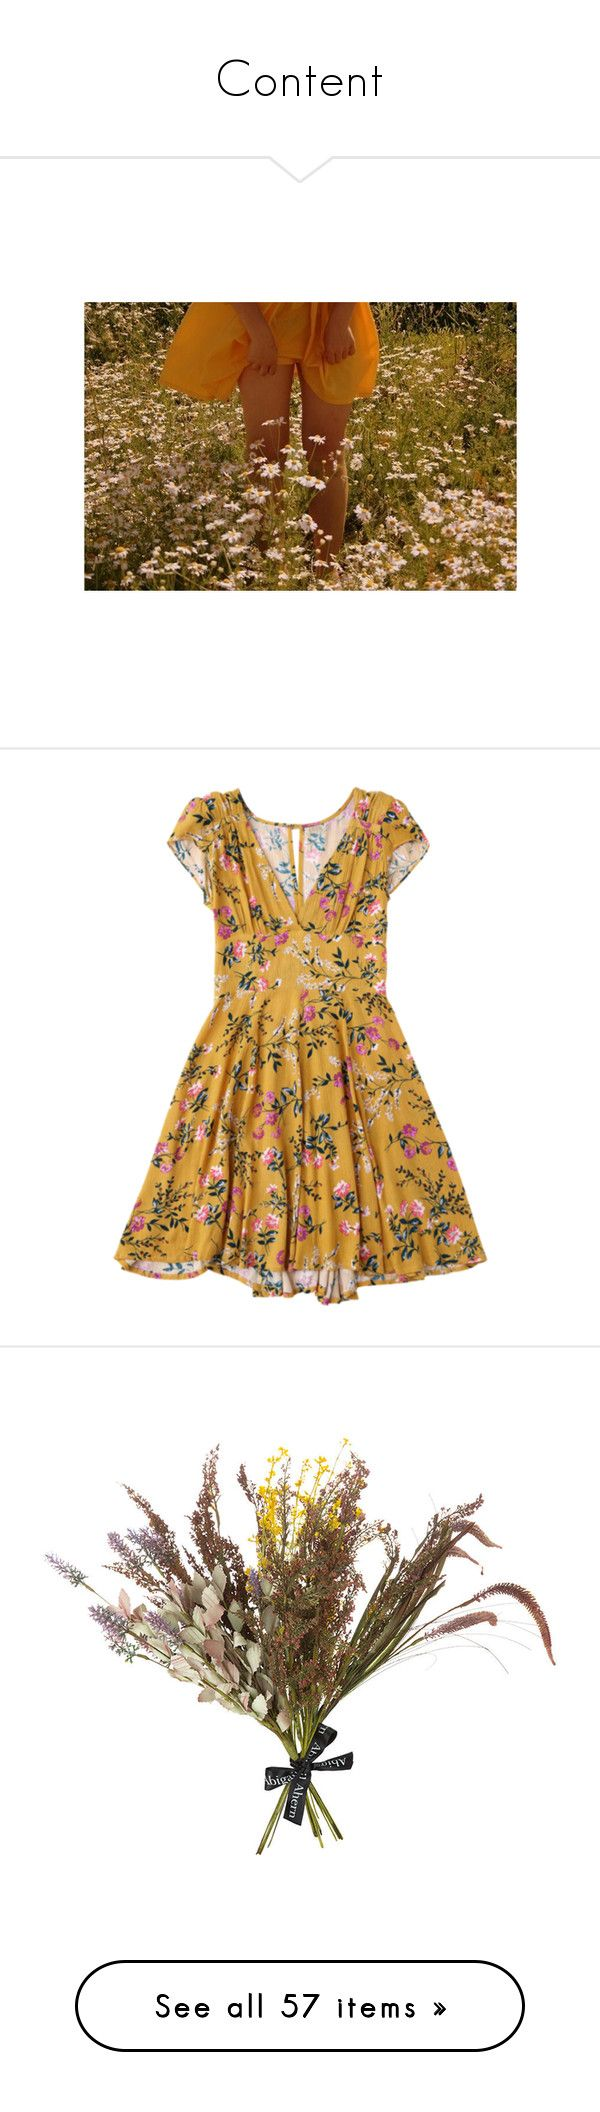 """""""Content"""" by lenajfam ❤ liked on Polyvore featuring Summer, happy, orange, pictures, dresses, brown cocktail dress, plunging-neckline dresses, floral pattern dress, floral print dress and print dress"""